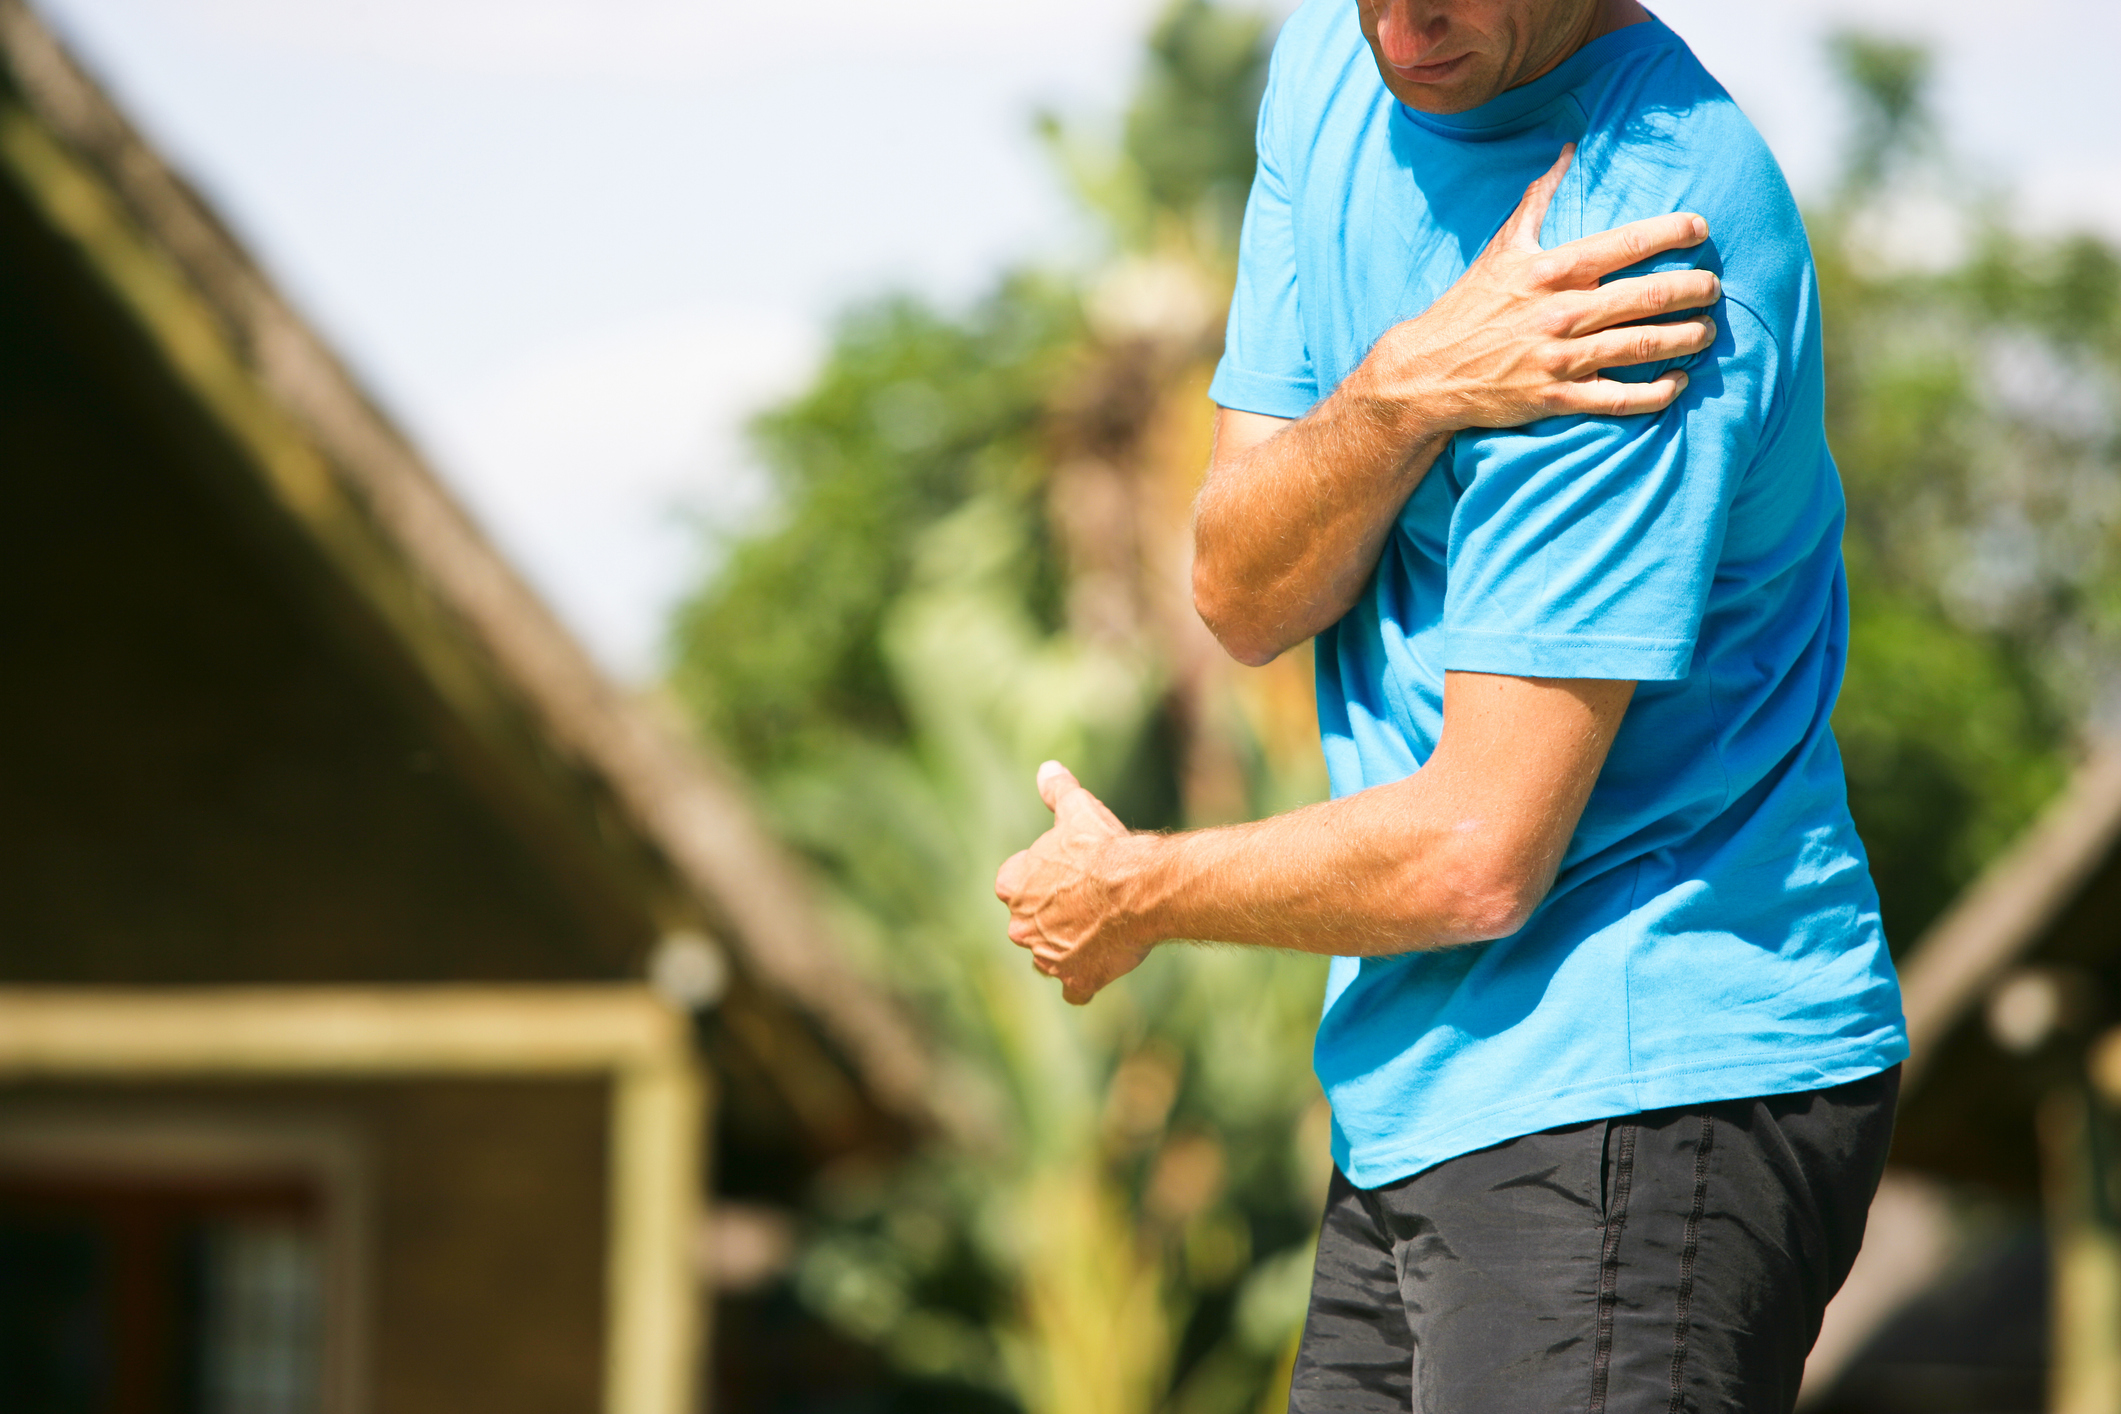 man with an injured rotator cuff clutching his shoulder